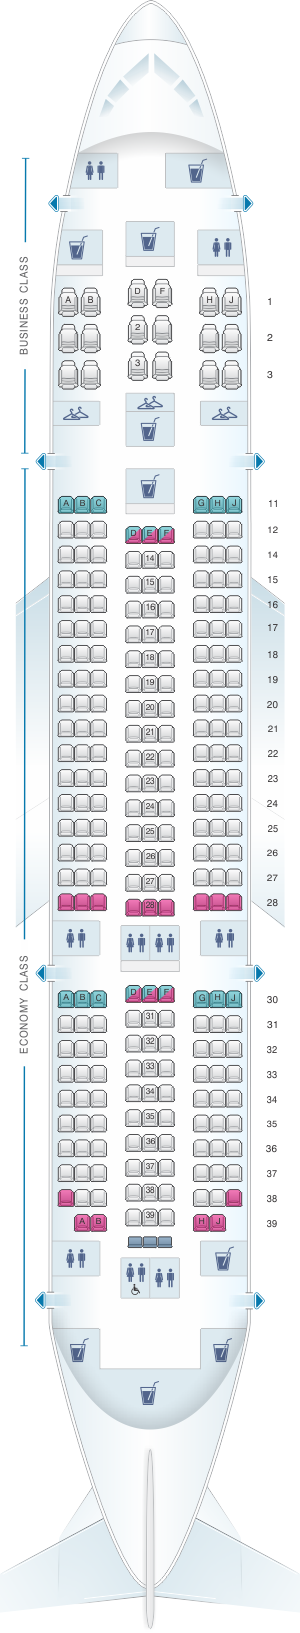 Seat Map Air India Boeing B787 Dreamliner | SeatMaestro